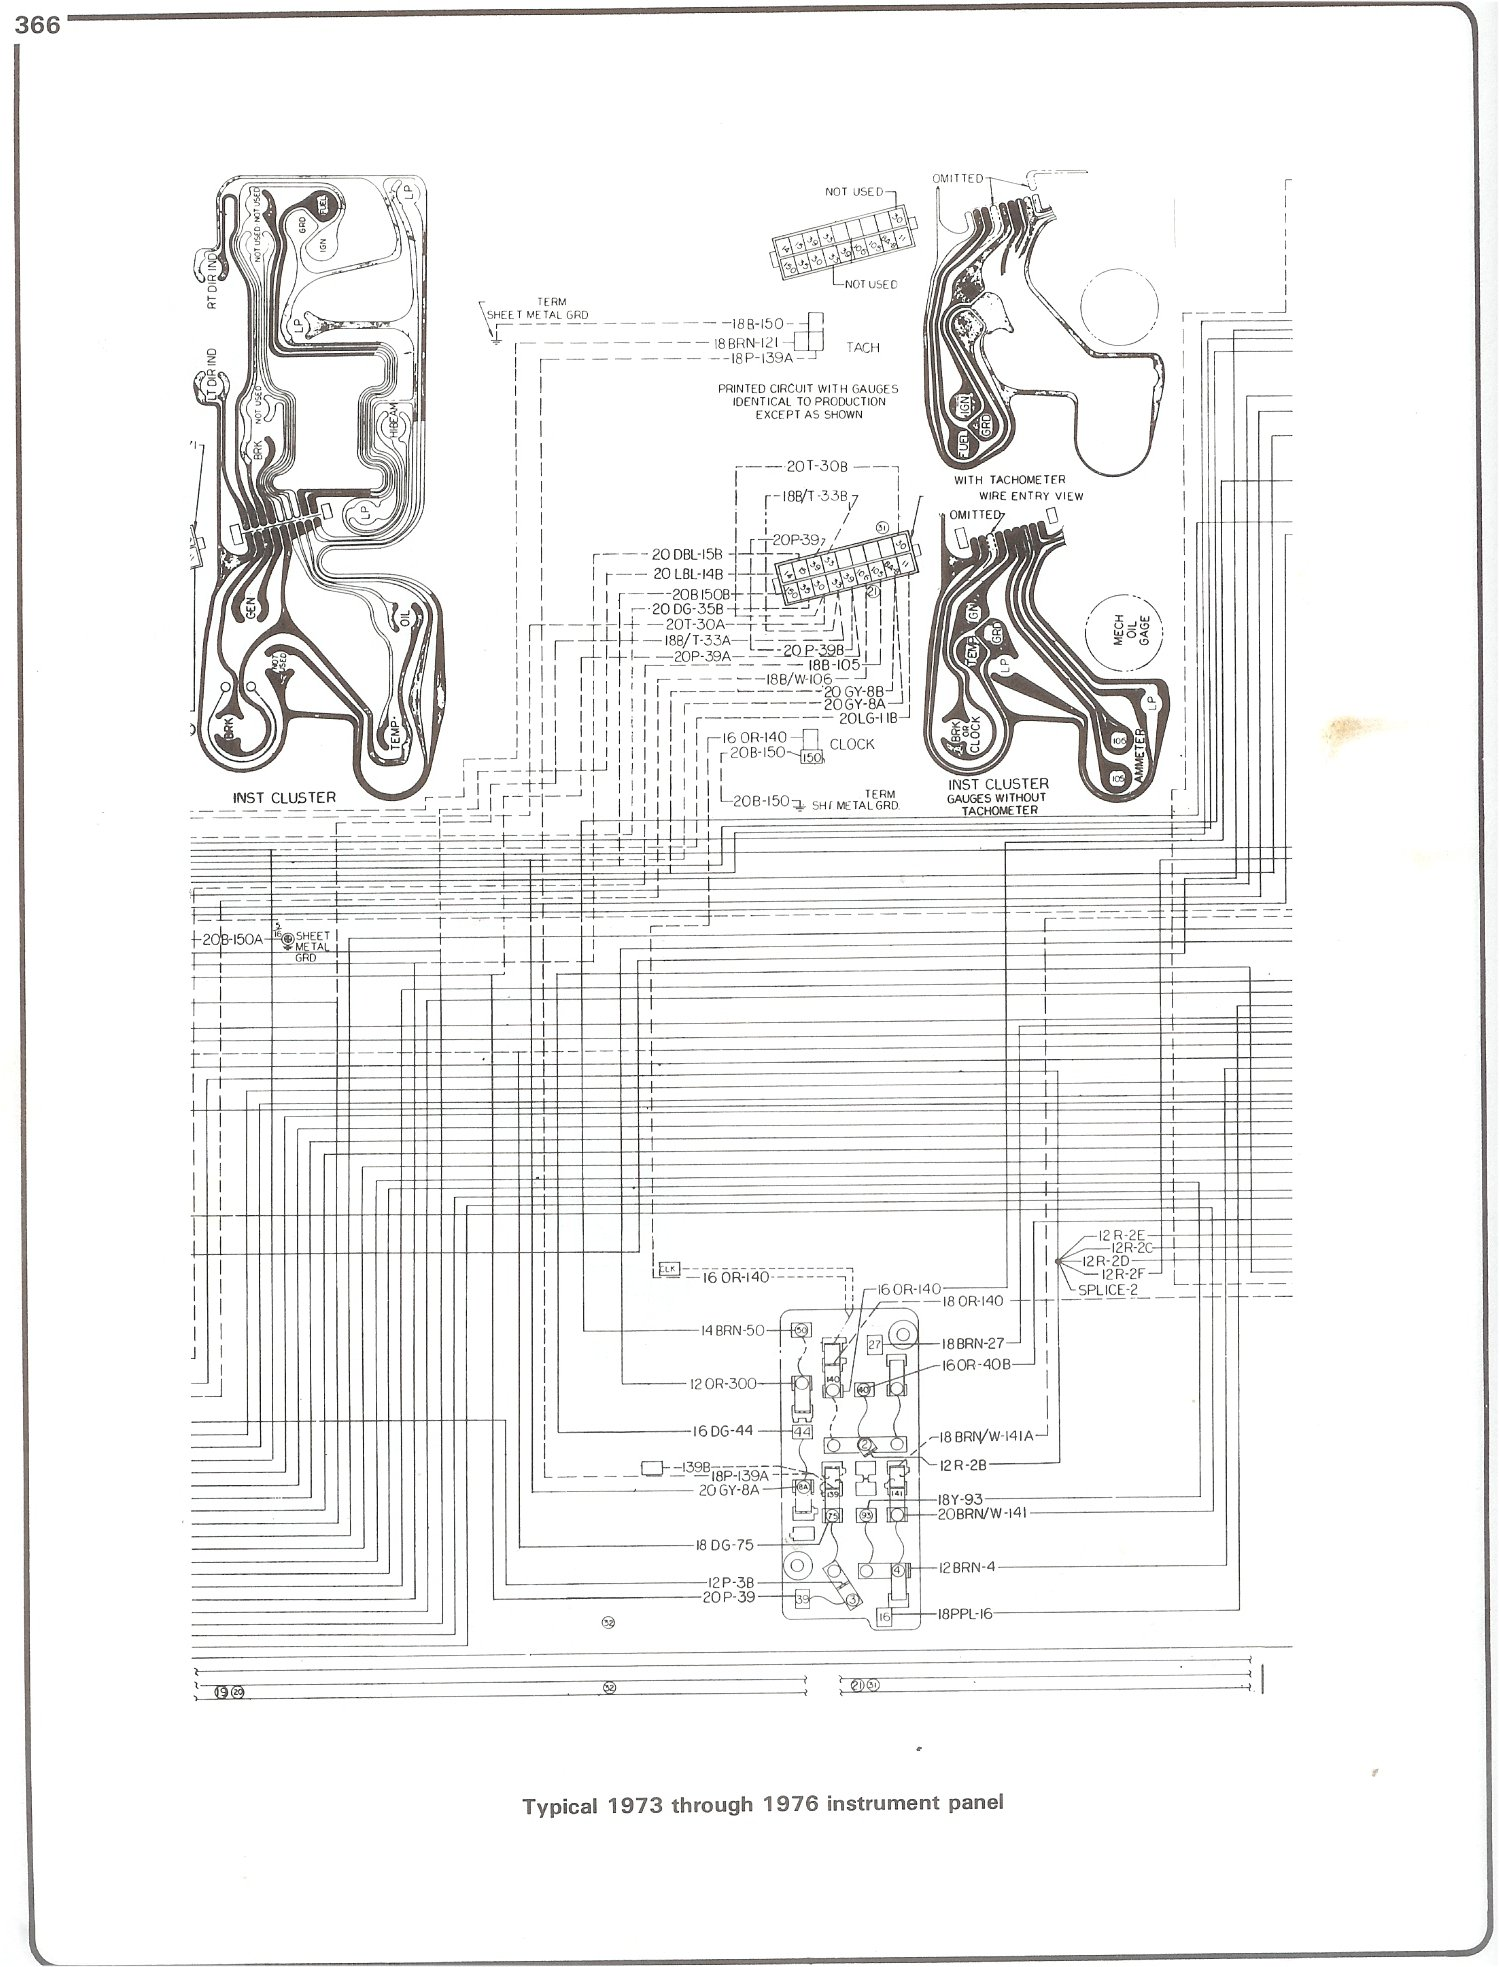 73 76_instrument complete 73 87 wiring diagrams 1986 chevy truck wiring diagram at gsmportal.co